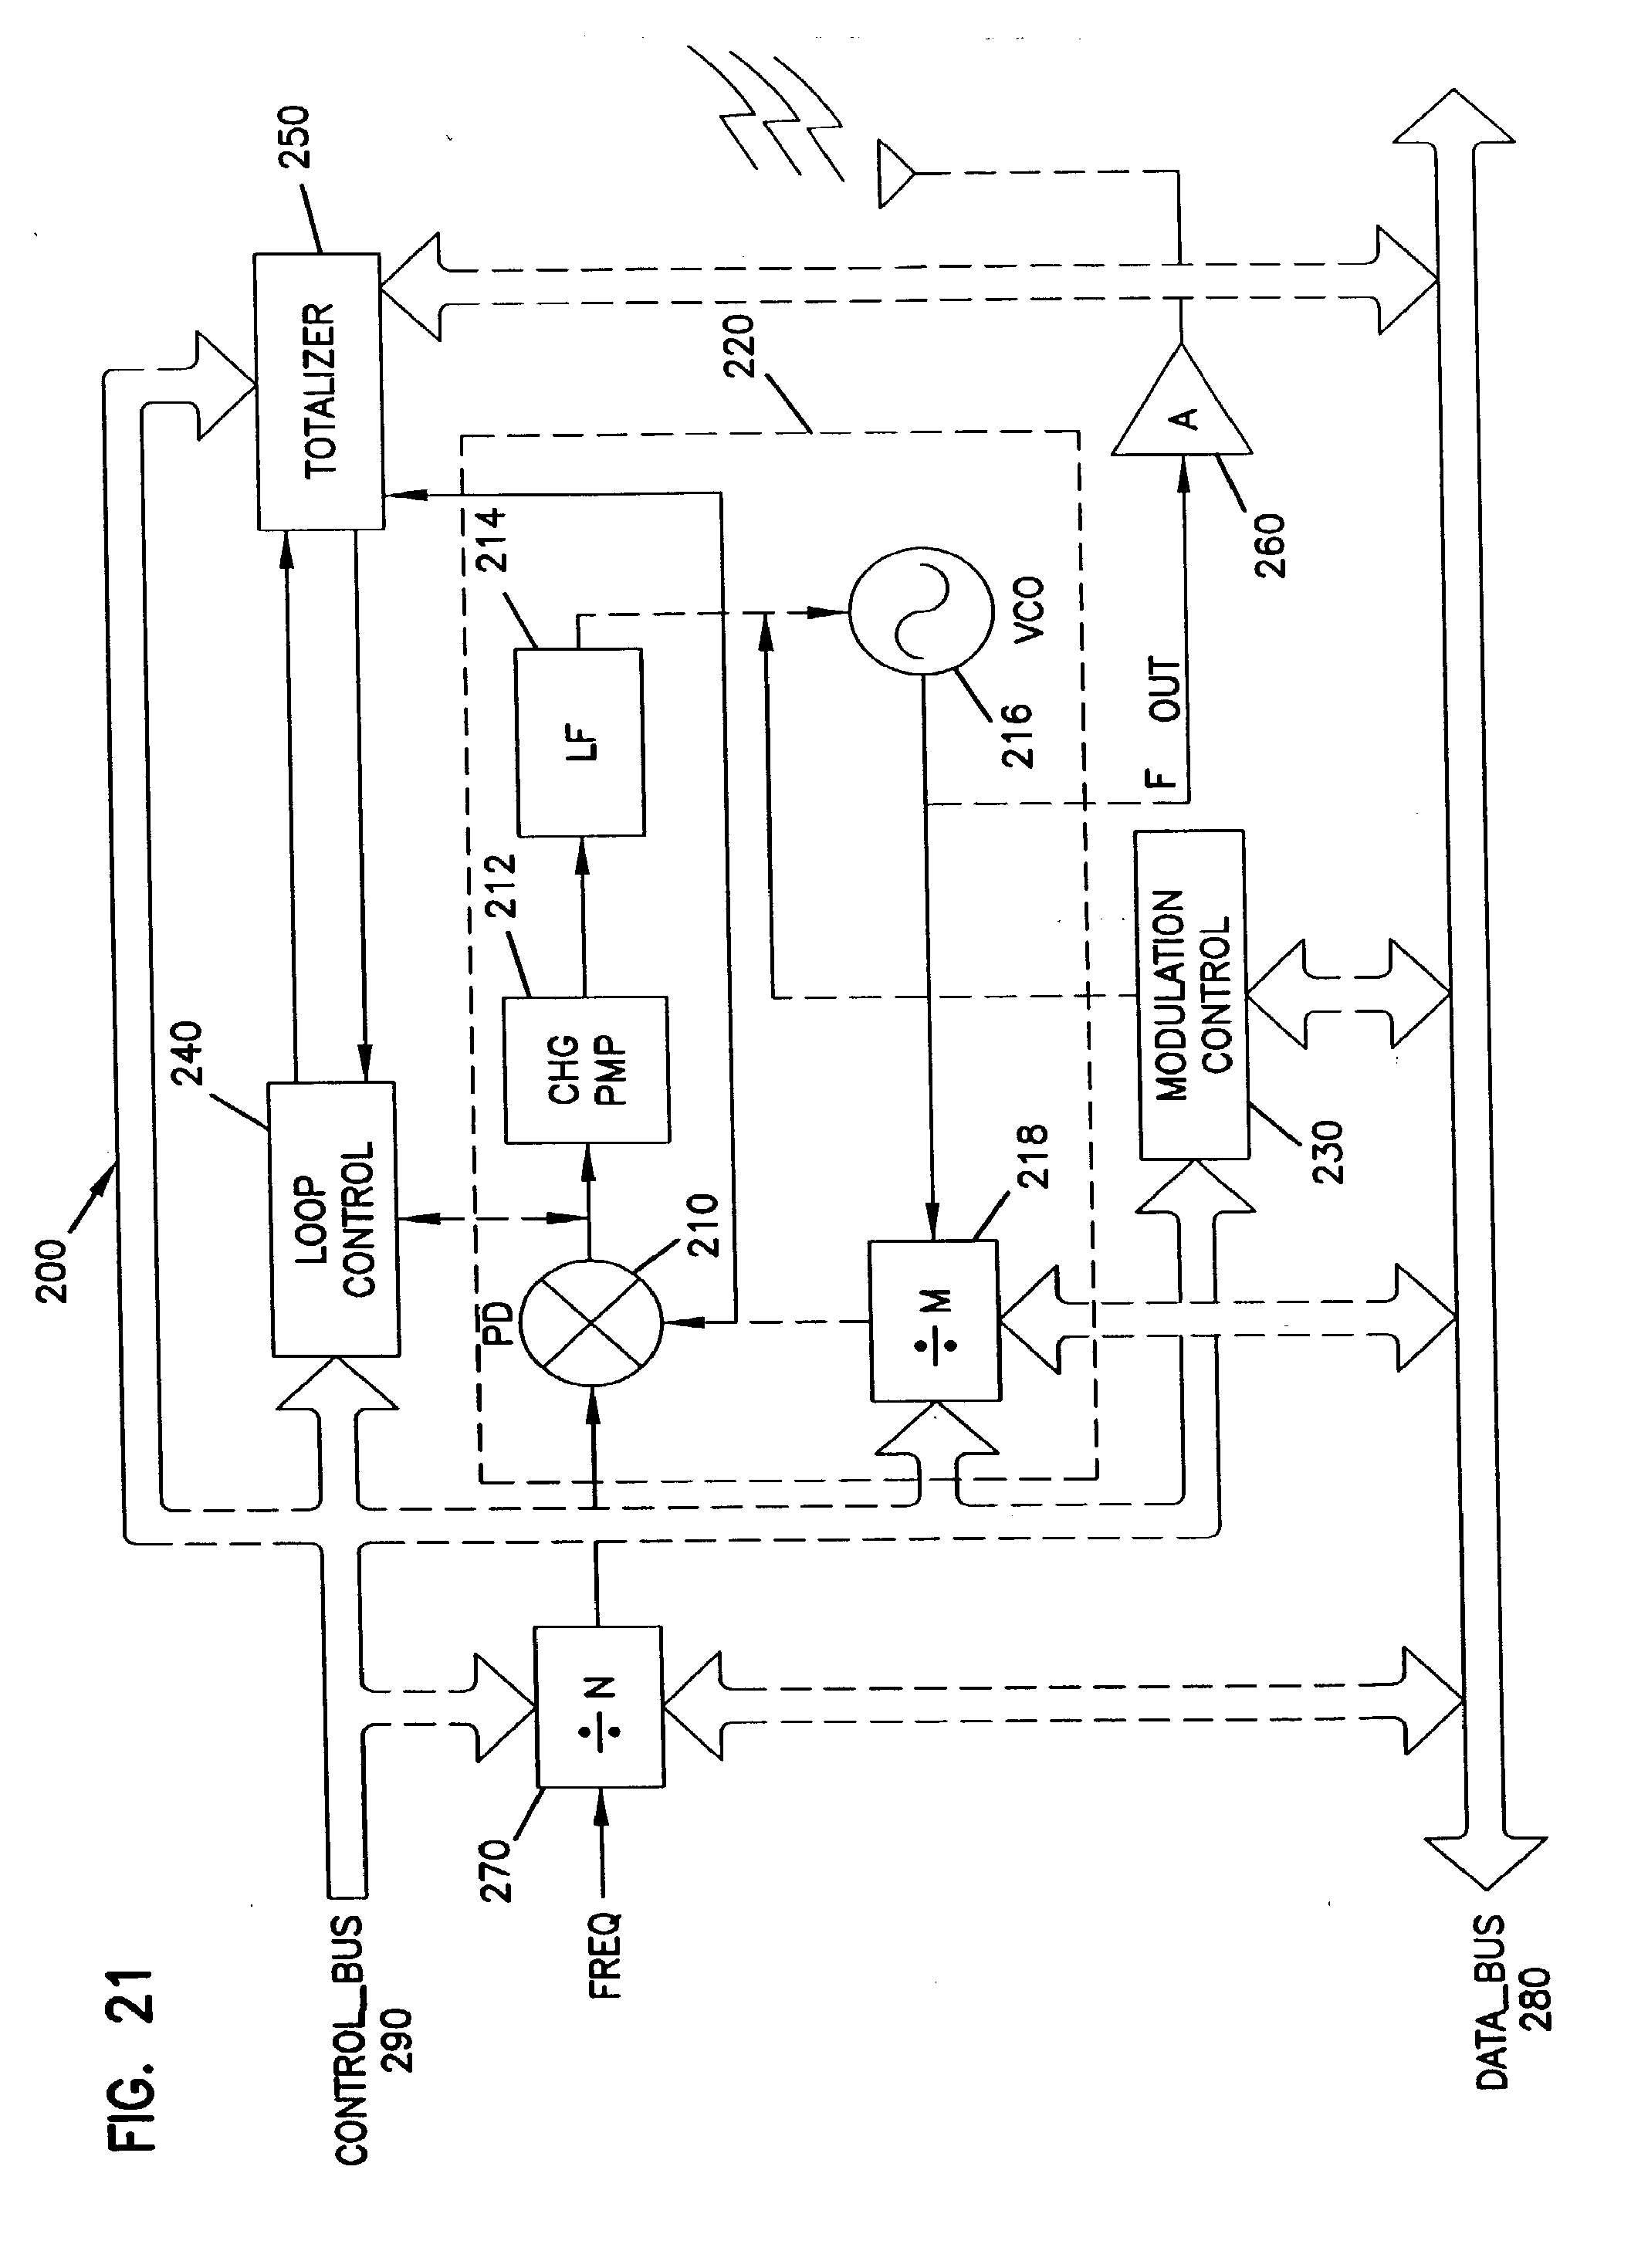 Us20100274111a1 Analyte Monitoring Device And Methods Of Use Far West Cathodic Rectifier Wiring Diagram Google Patents